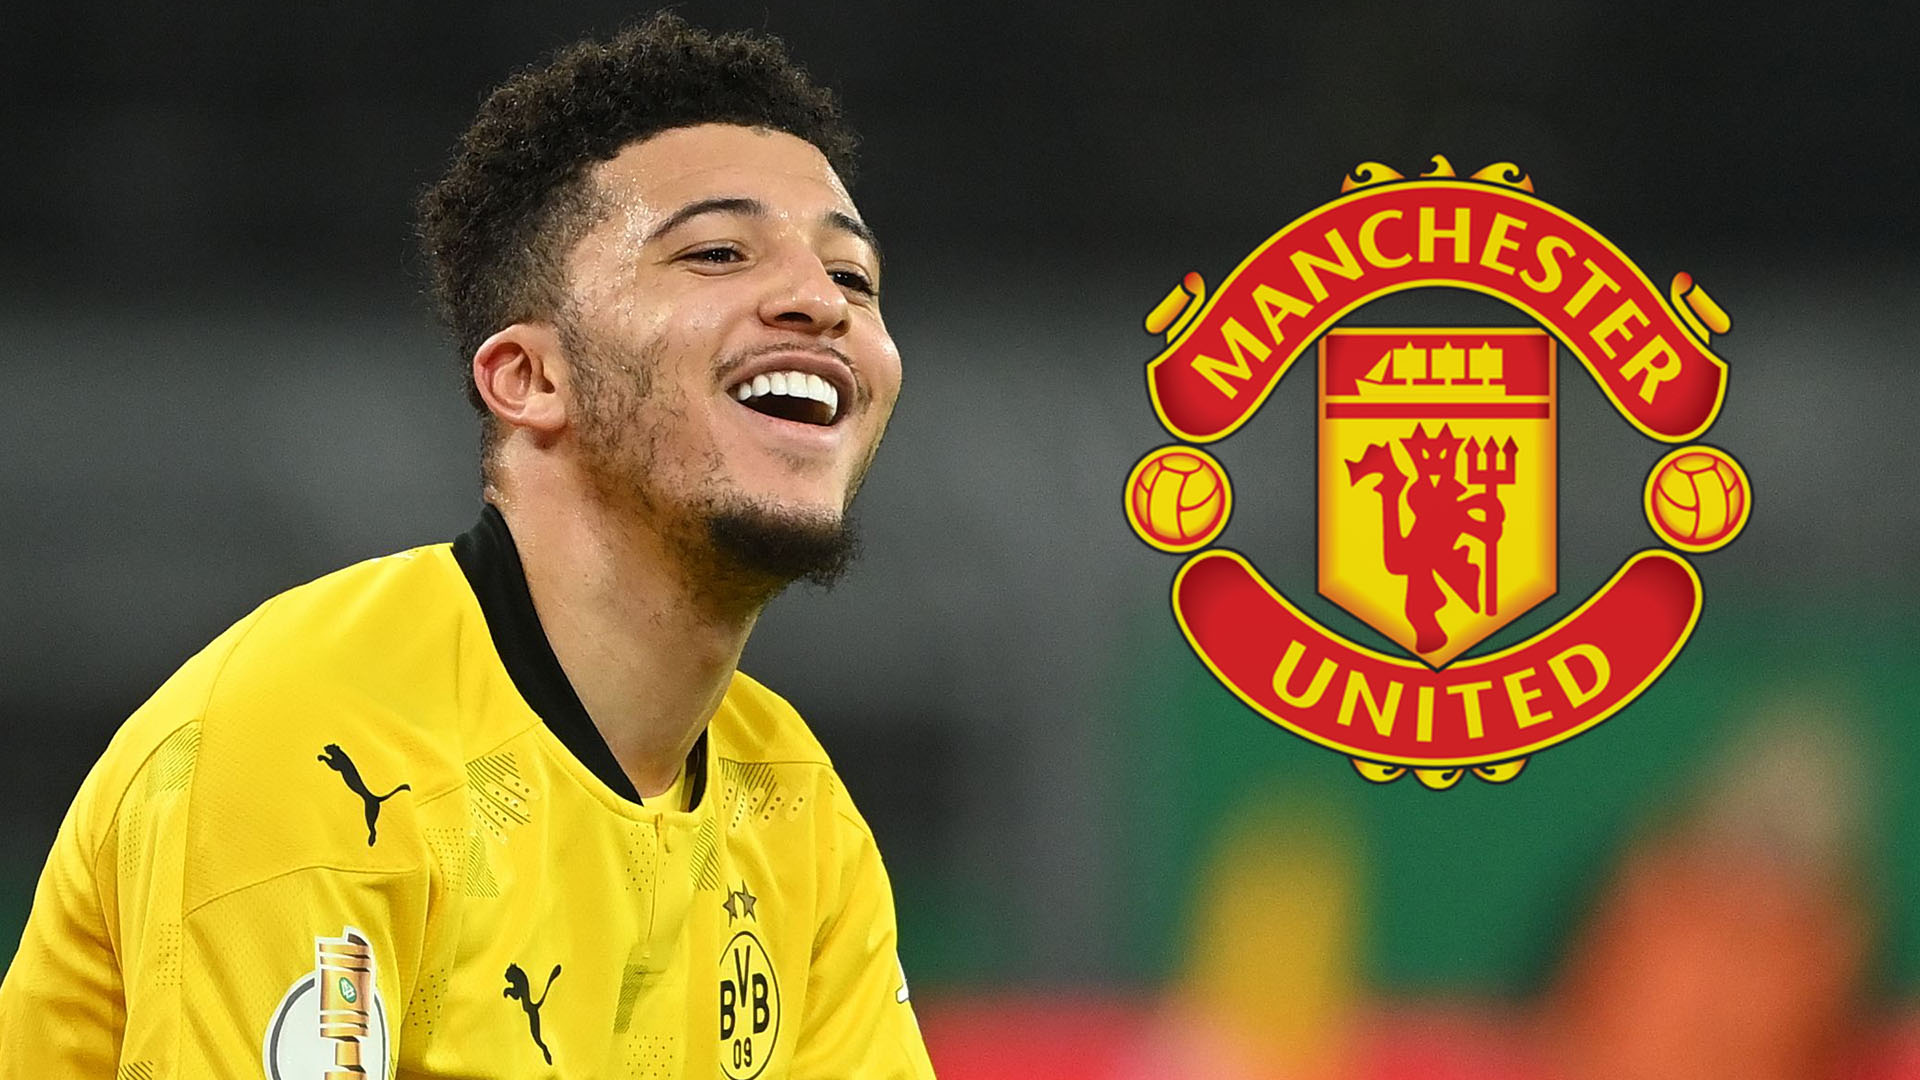 Transfer news and rumours LIVE: Sancho set for Man Utd medical